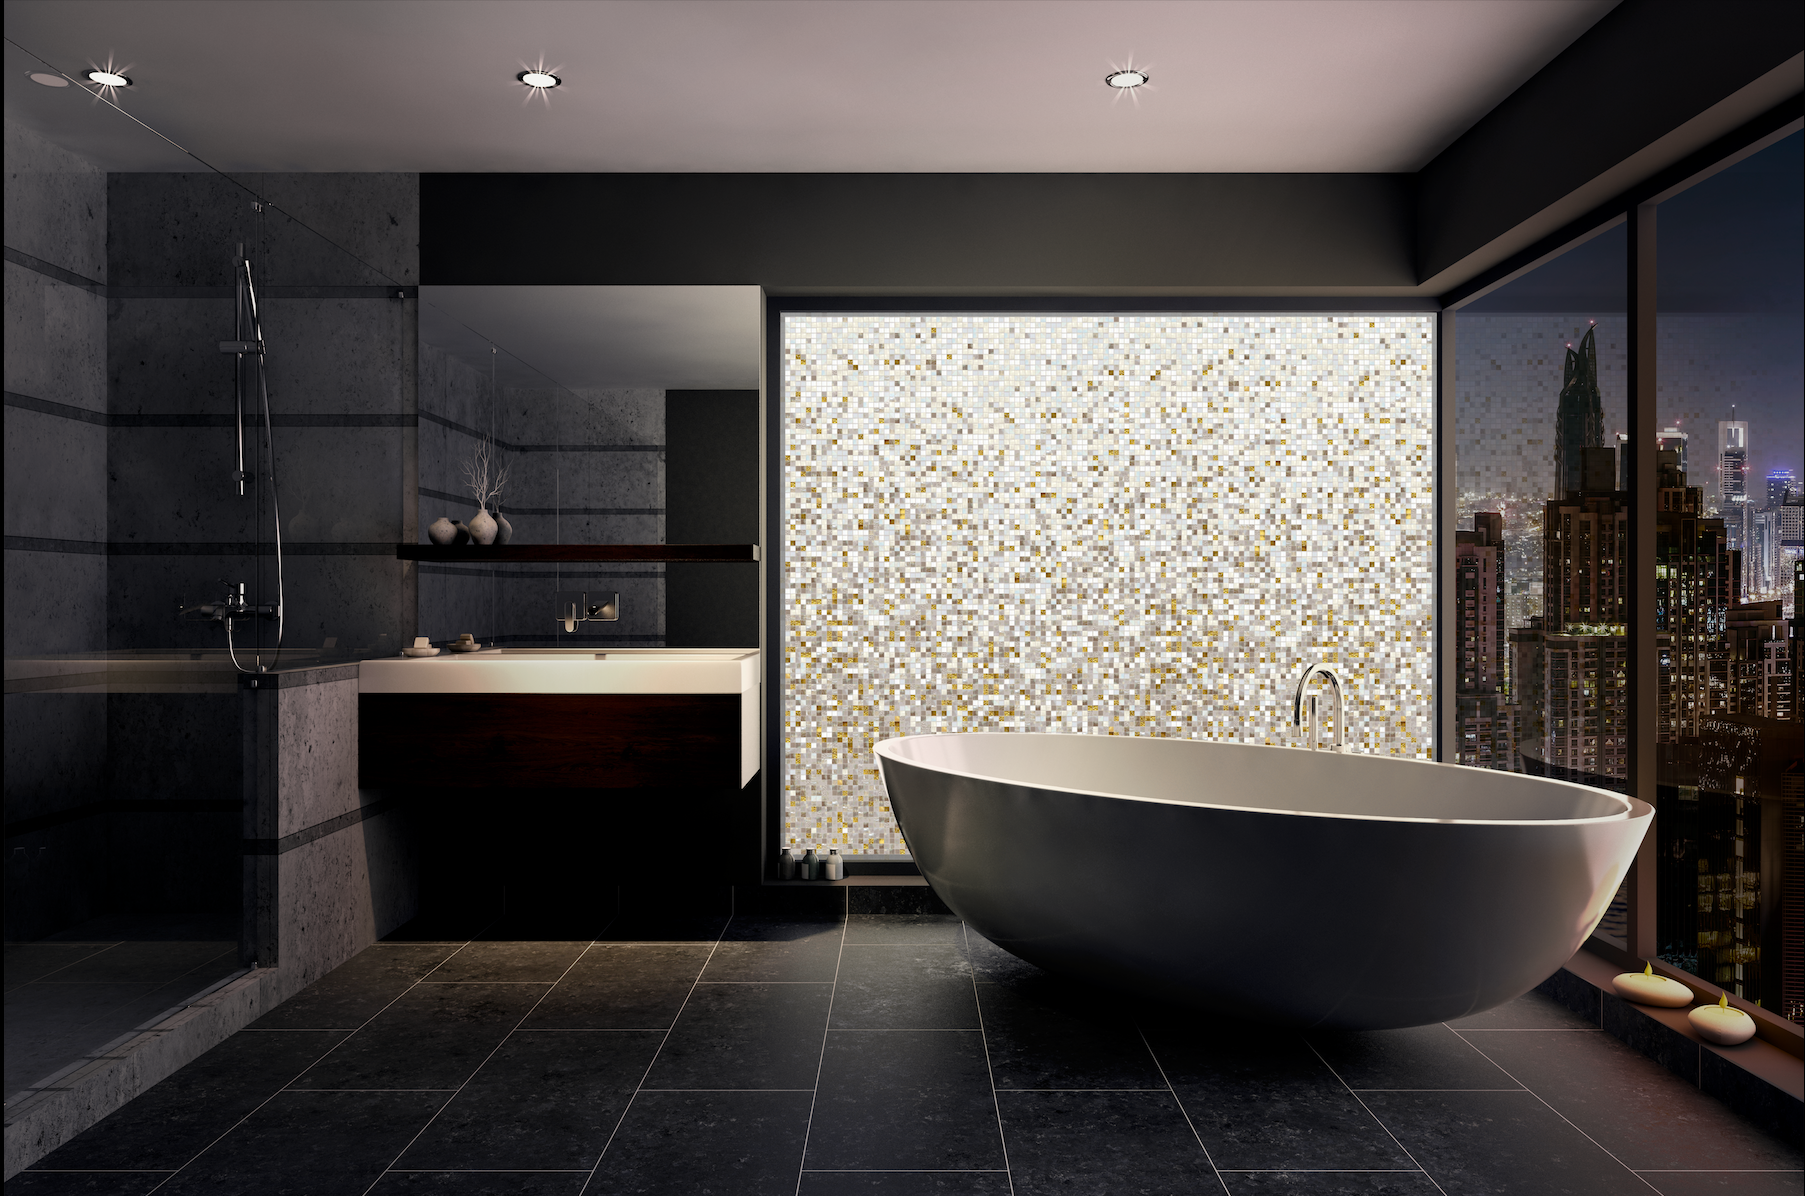 Image of a bathroom with bathtub and citysky view showing a pattern of warm white volatiles mosaics